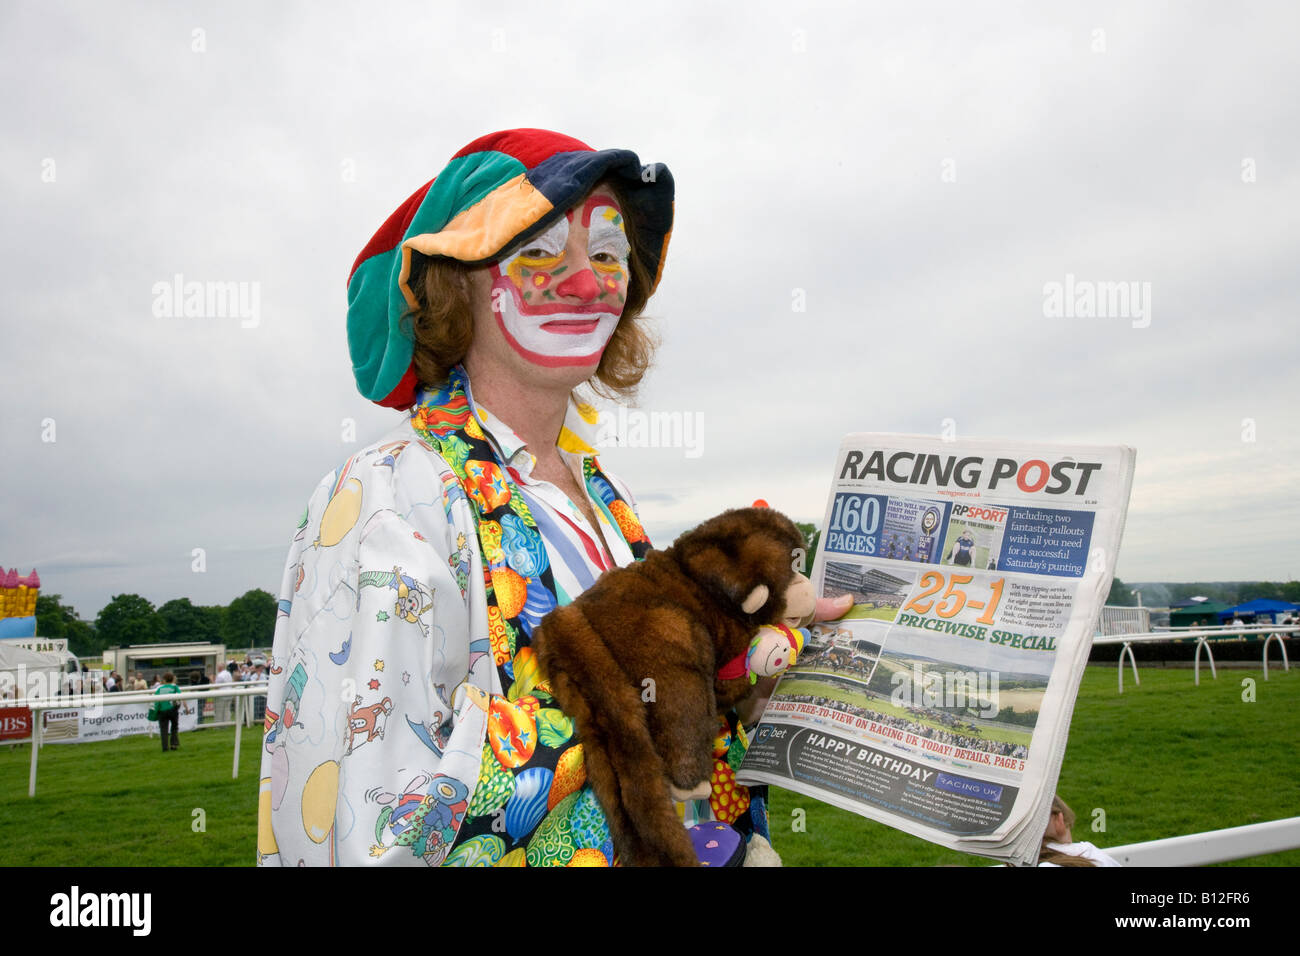 Horse racing event attended by Stevie (MR) the professional Clown and puppet at Corporate race meeting at Perth - Stock Image